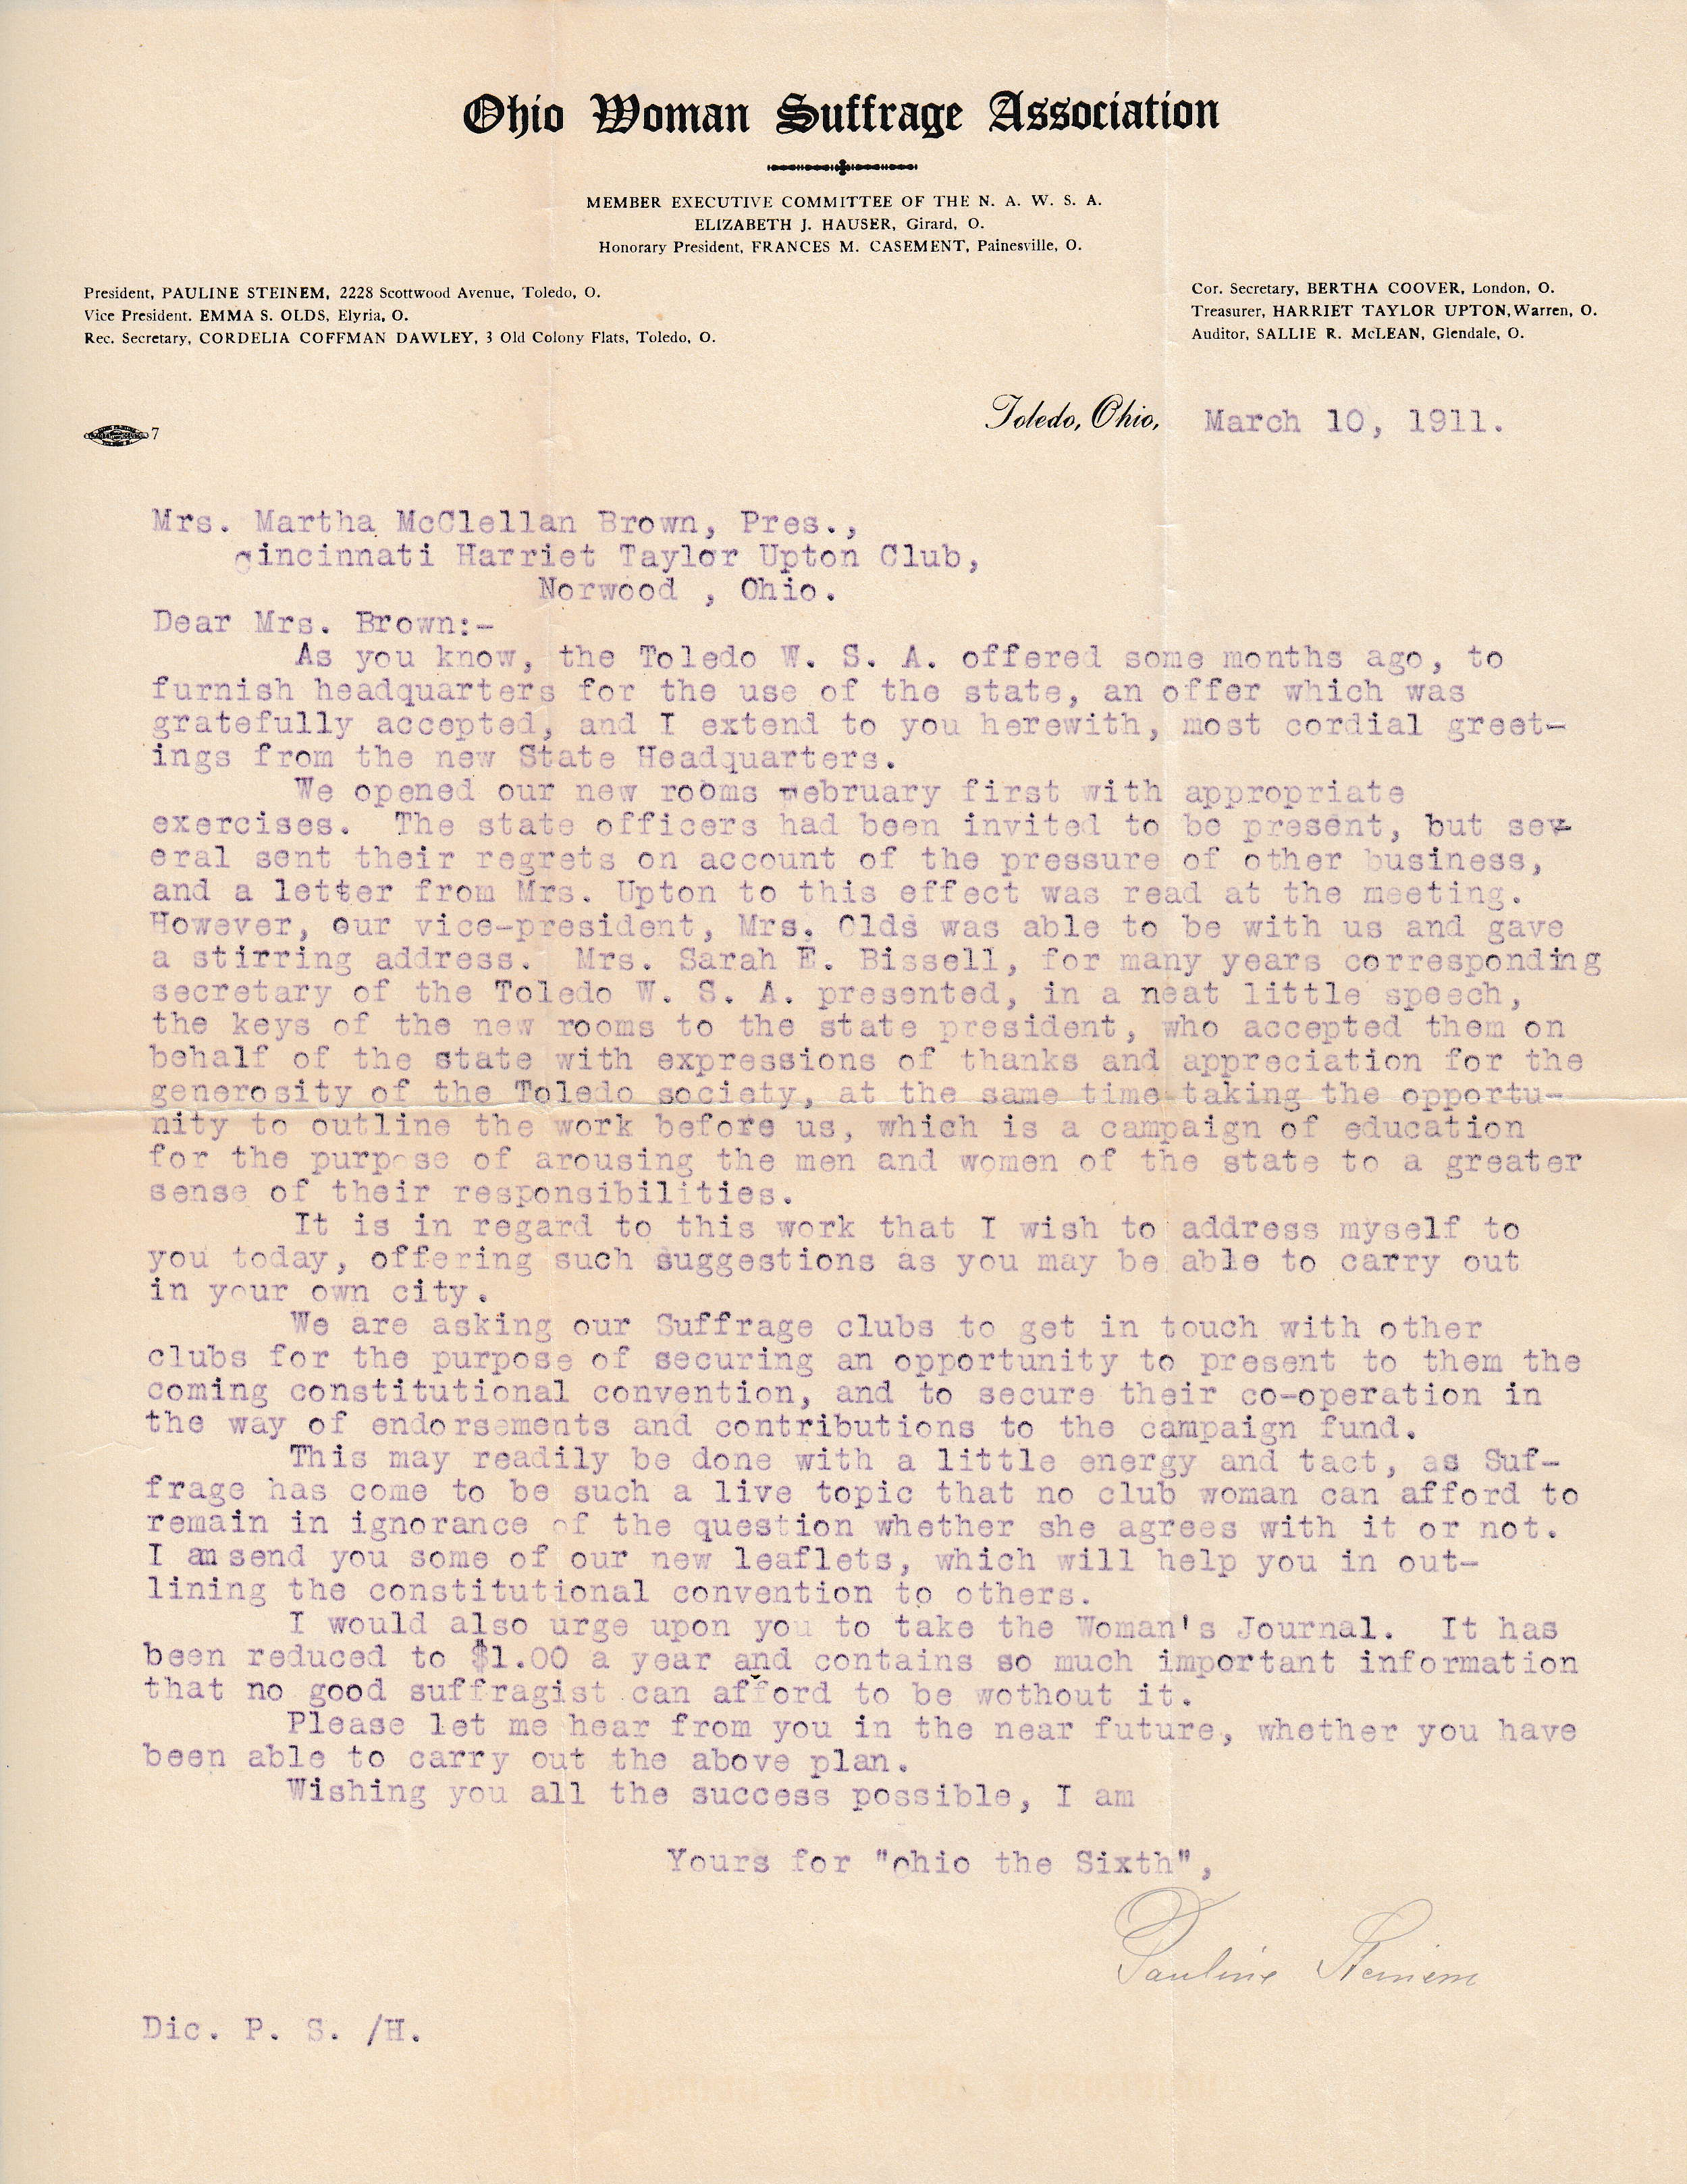 Steinem letter, March 1911, MS-147, B10, F6 (click to enlarge)